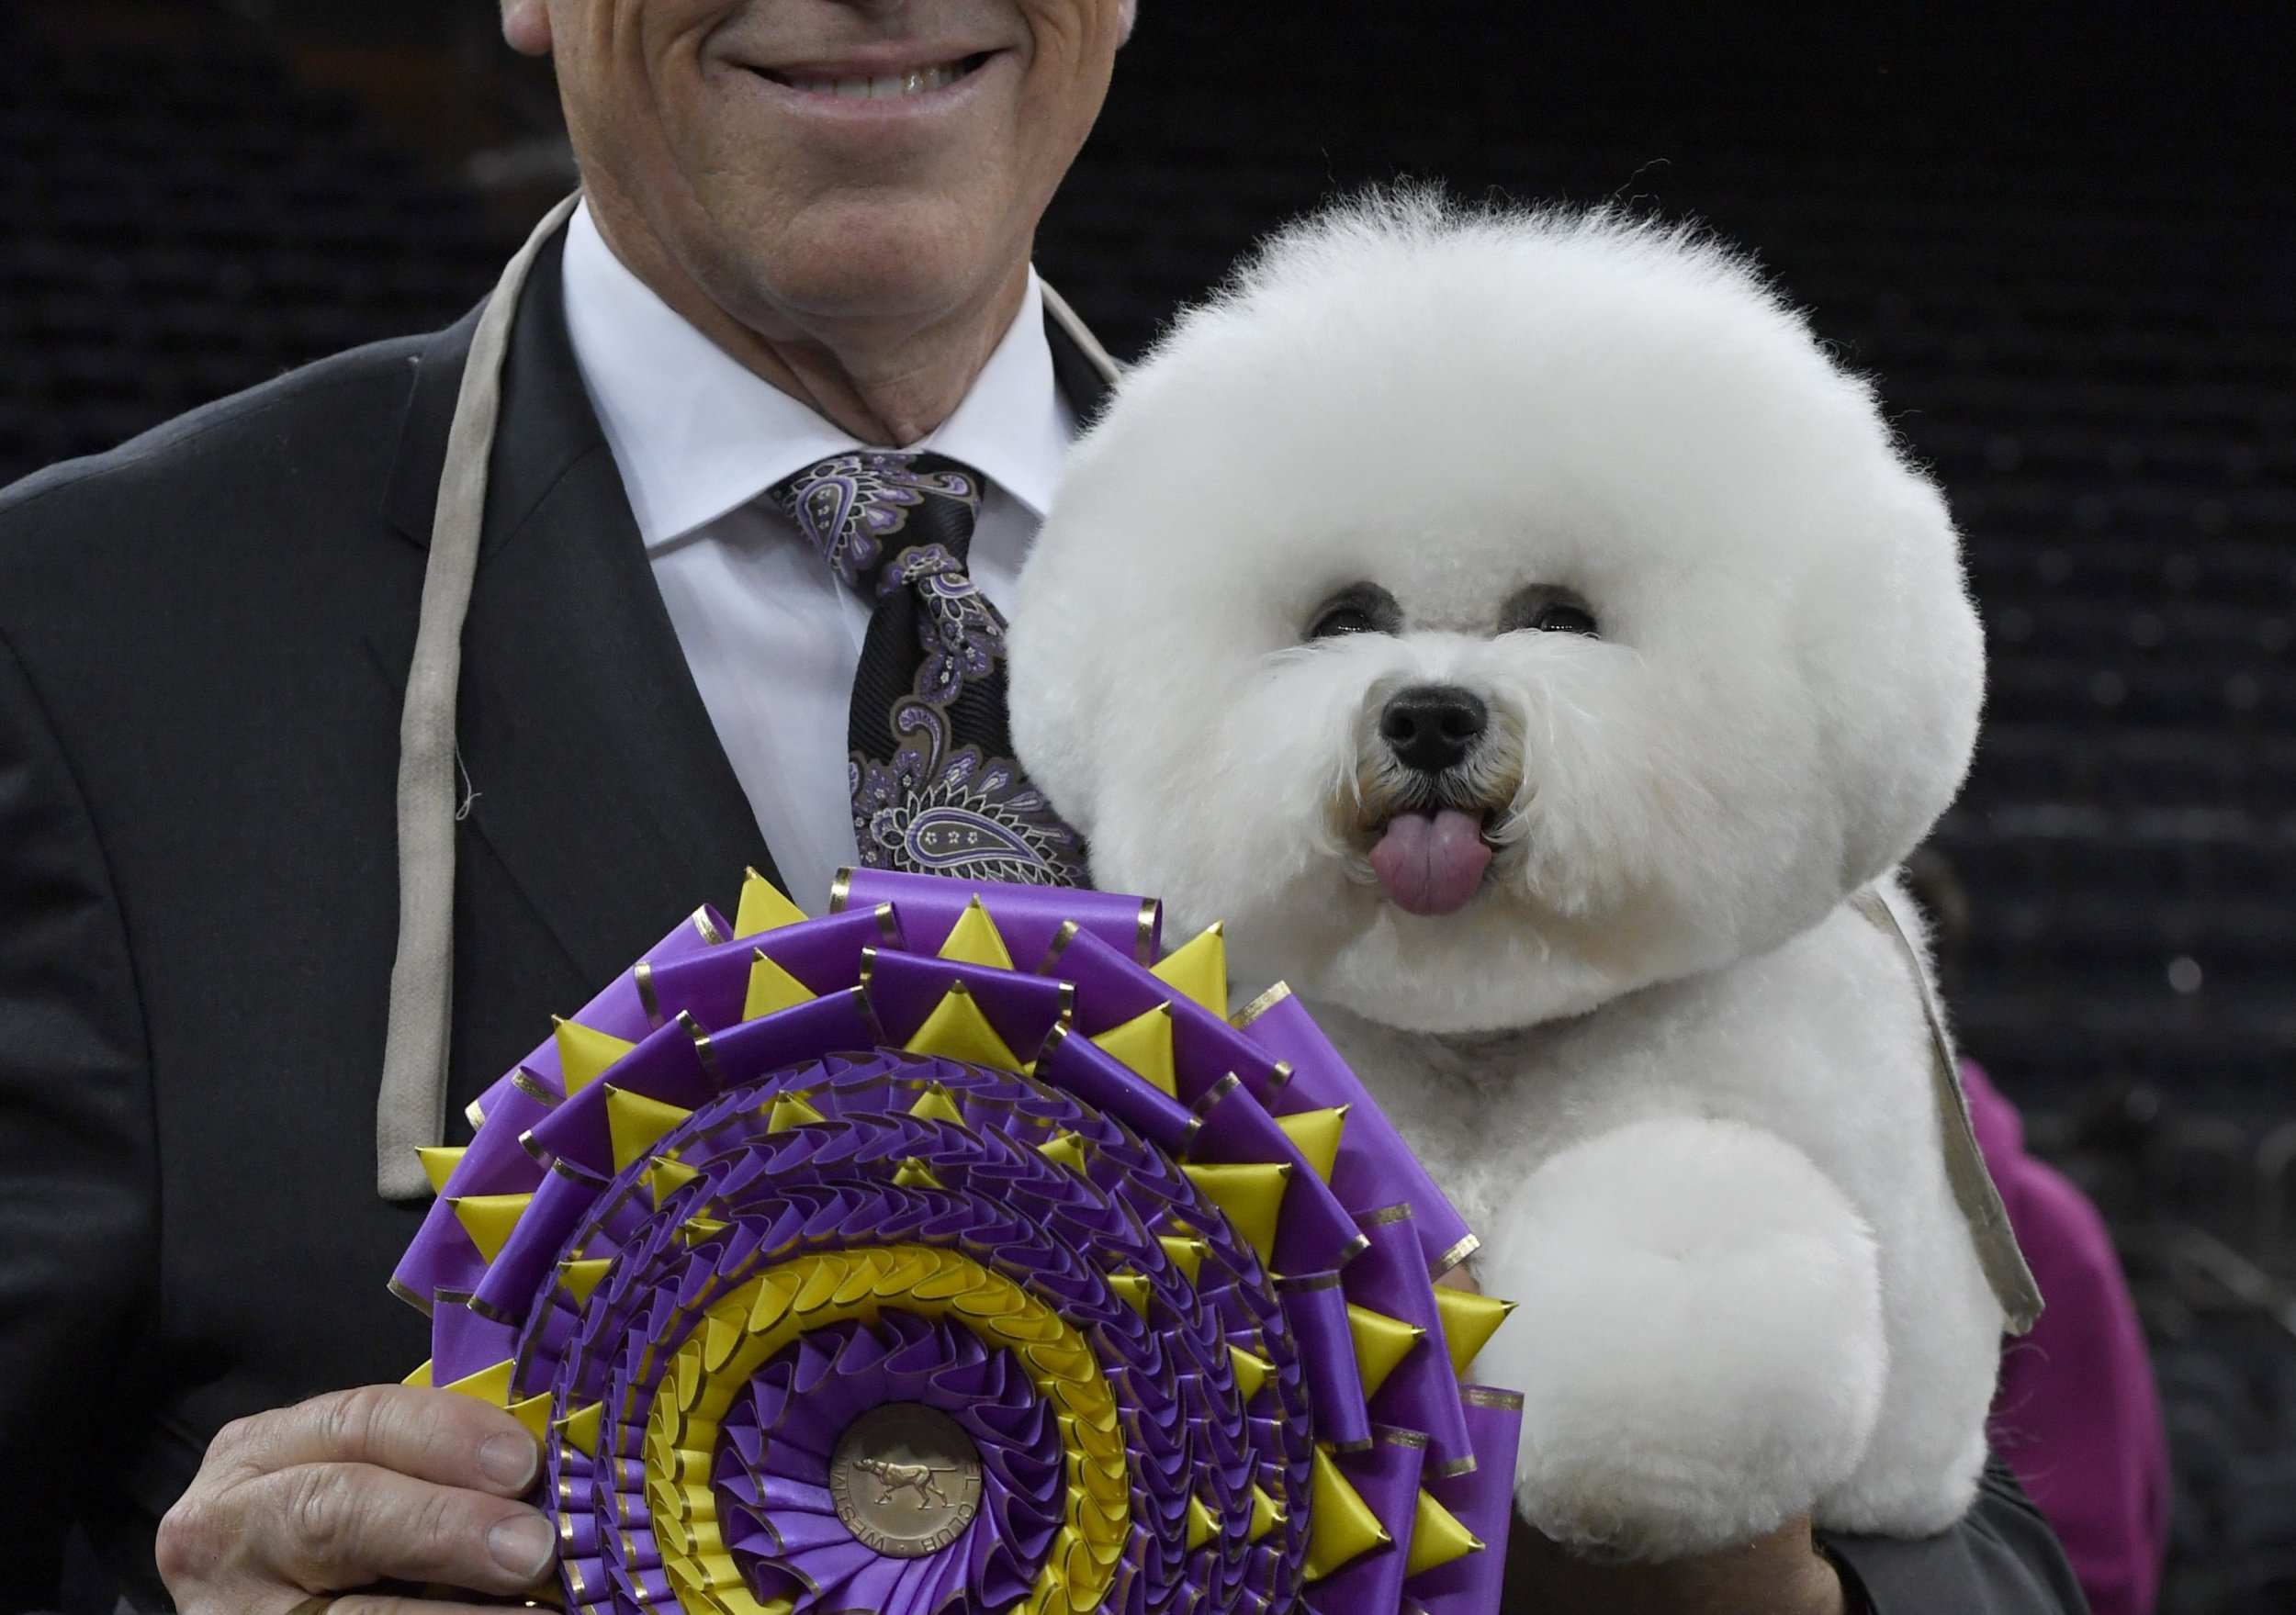 Westminster Dog Show 2019: Best in Show Judge Dishes on What